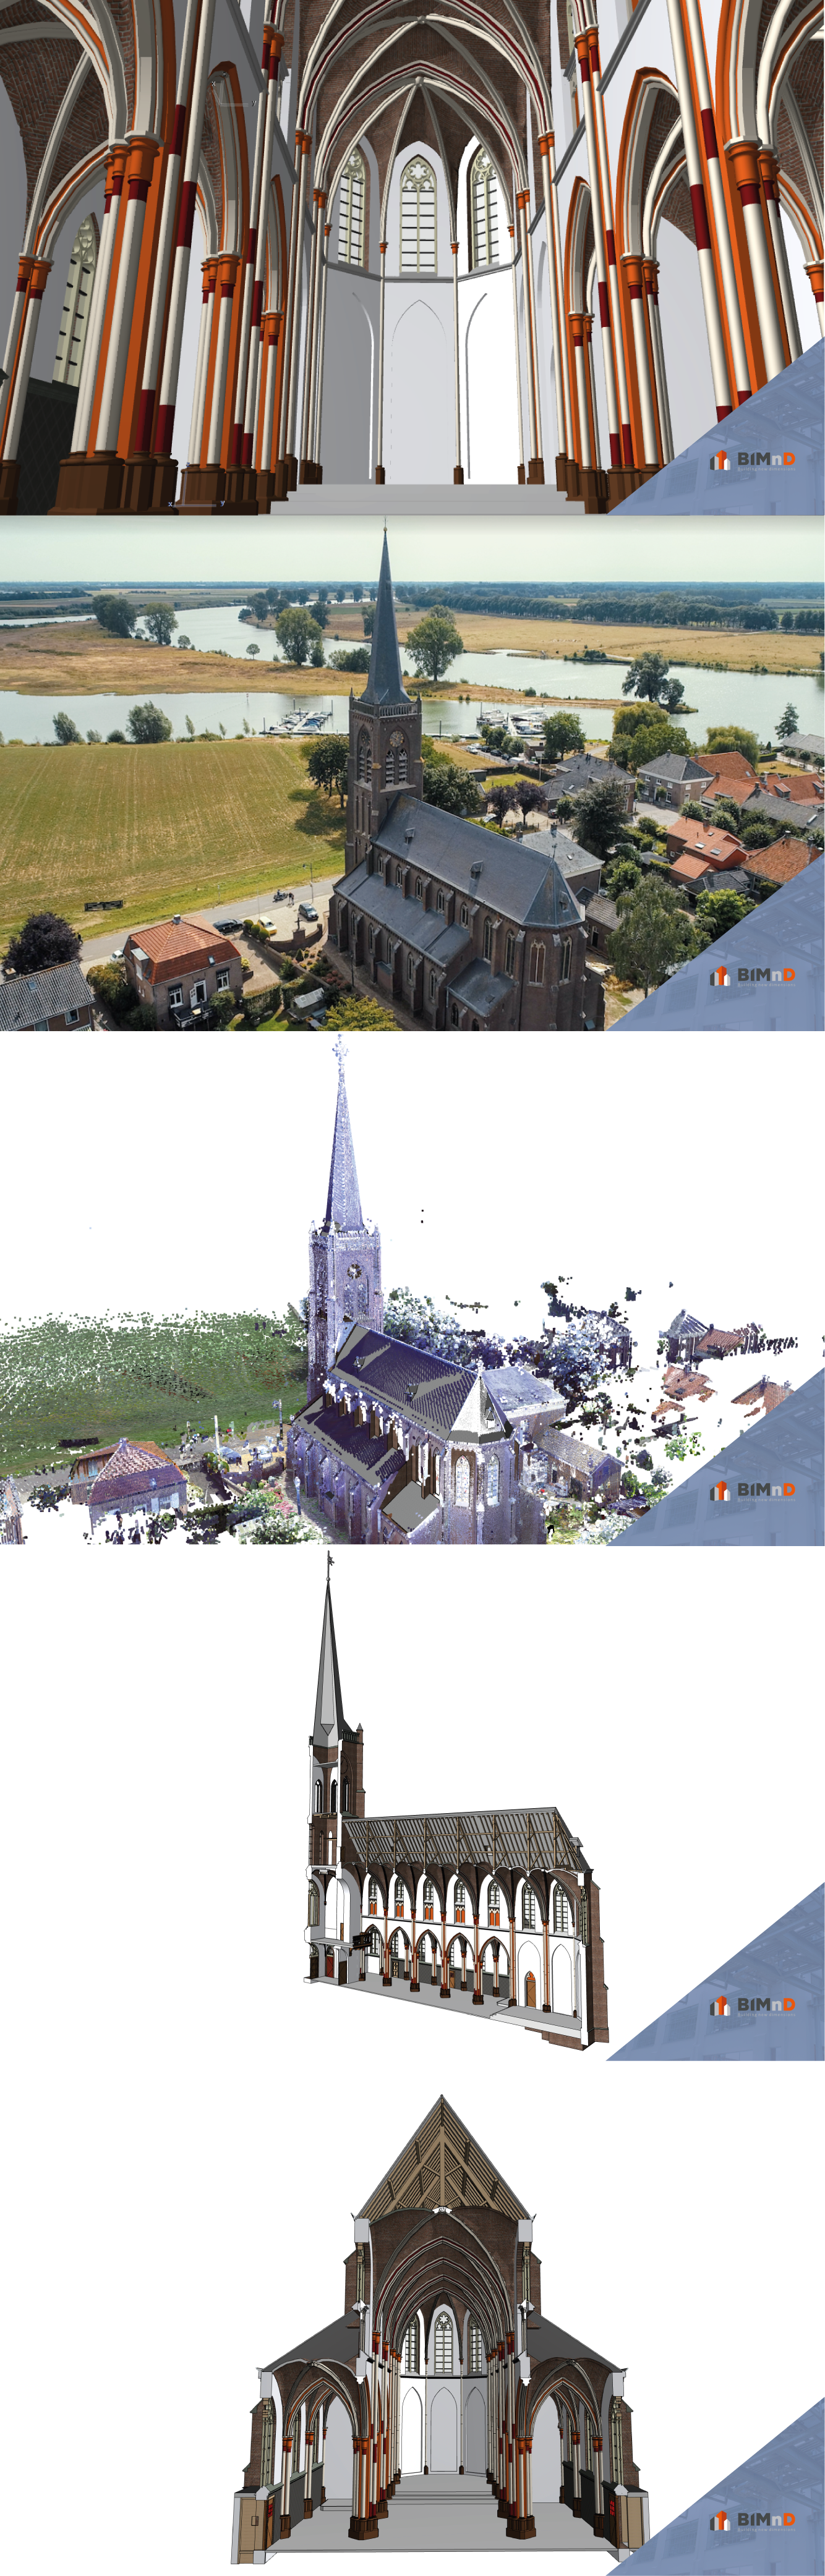 Kerk_Batenburg_BIMnD_BIM_Model_Archicad_Revit